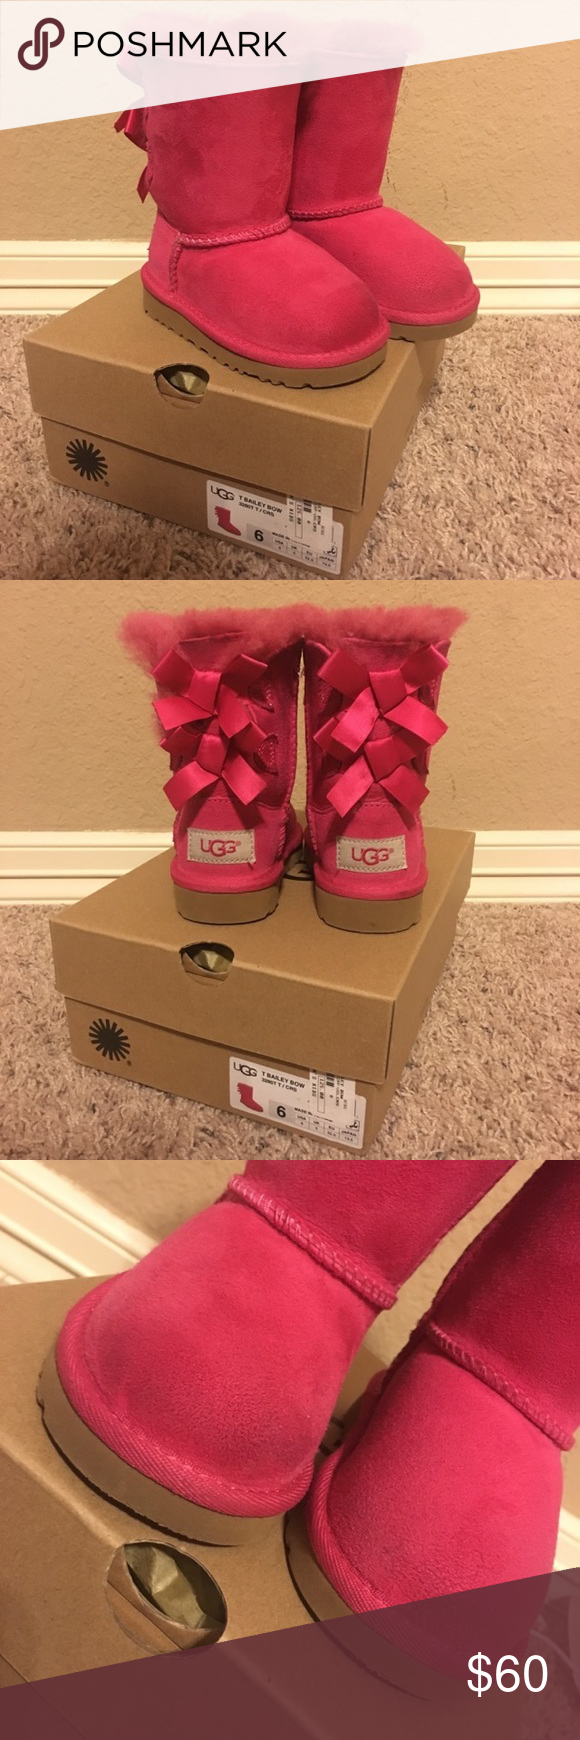 Pink Bailey Bow Uggs Hot pink Bailey Bow toddler Uggs size 6 with original box.